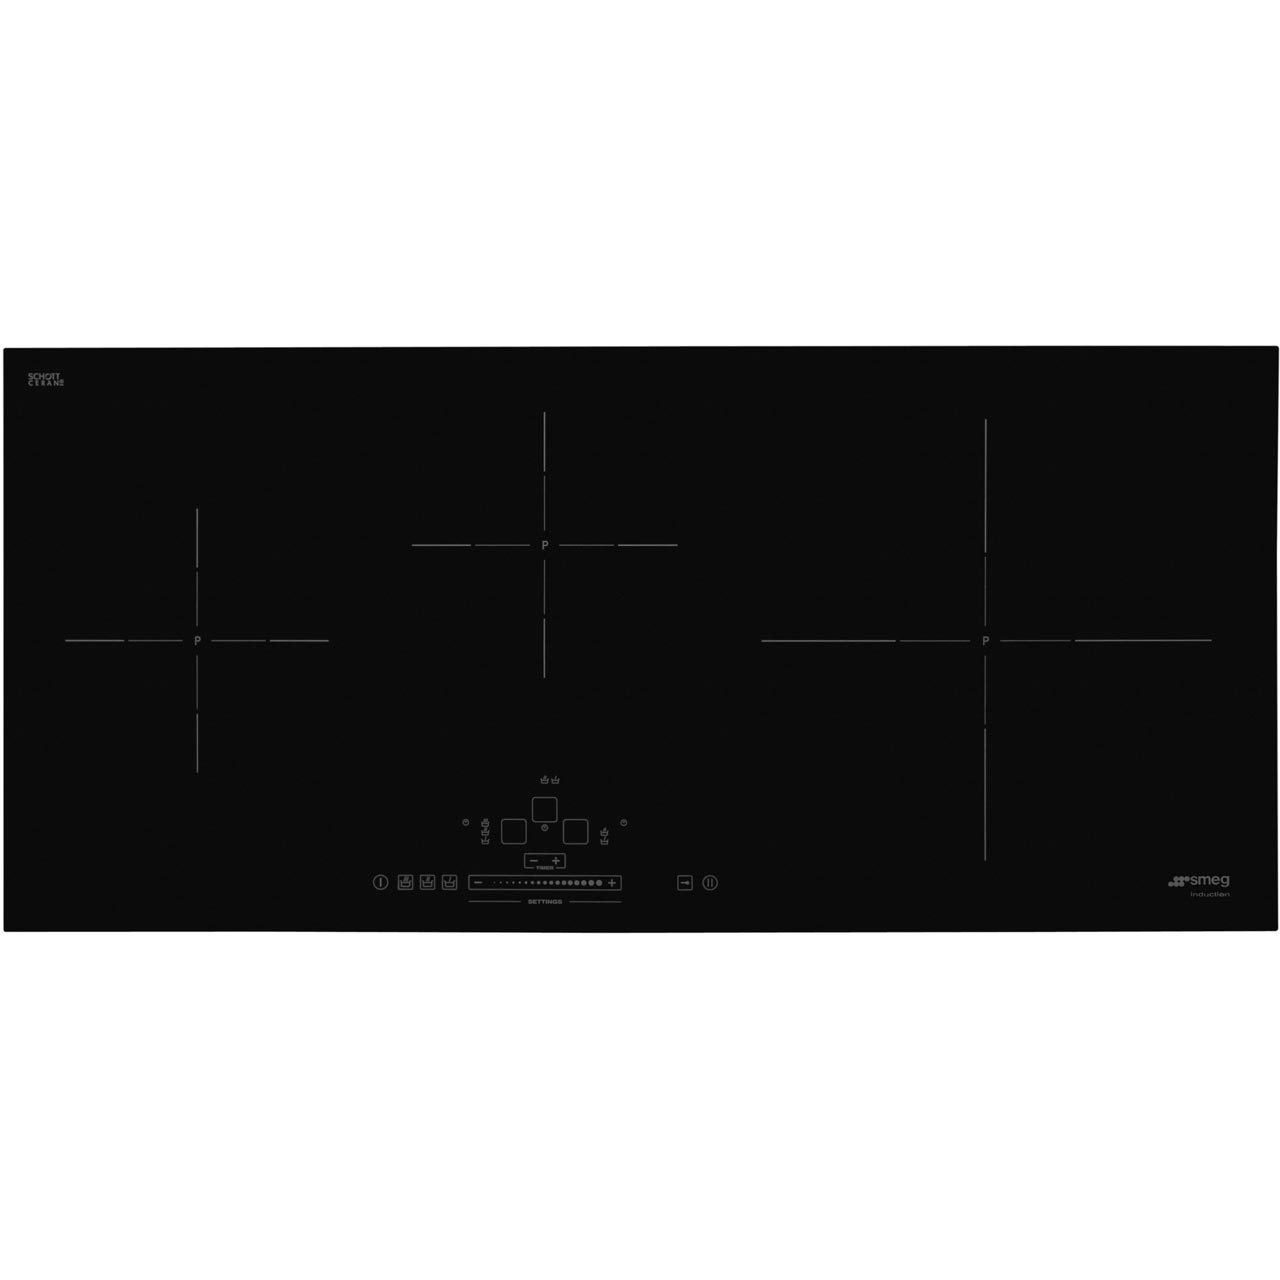 Sih5935b Bk Smeg Induction Hob 3 Zones 86cm Cooker Circuit Diagram As Well Wiring Also Air